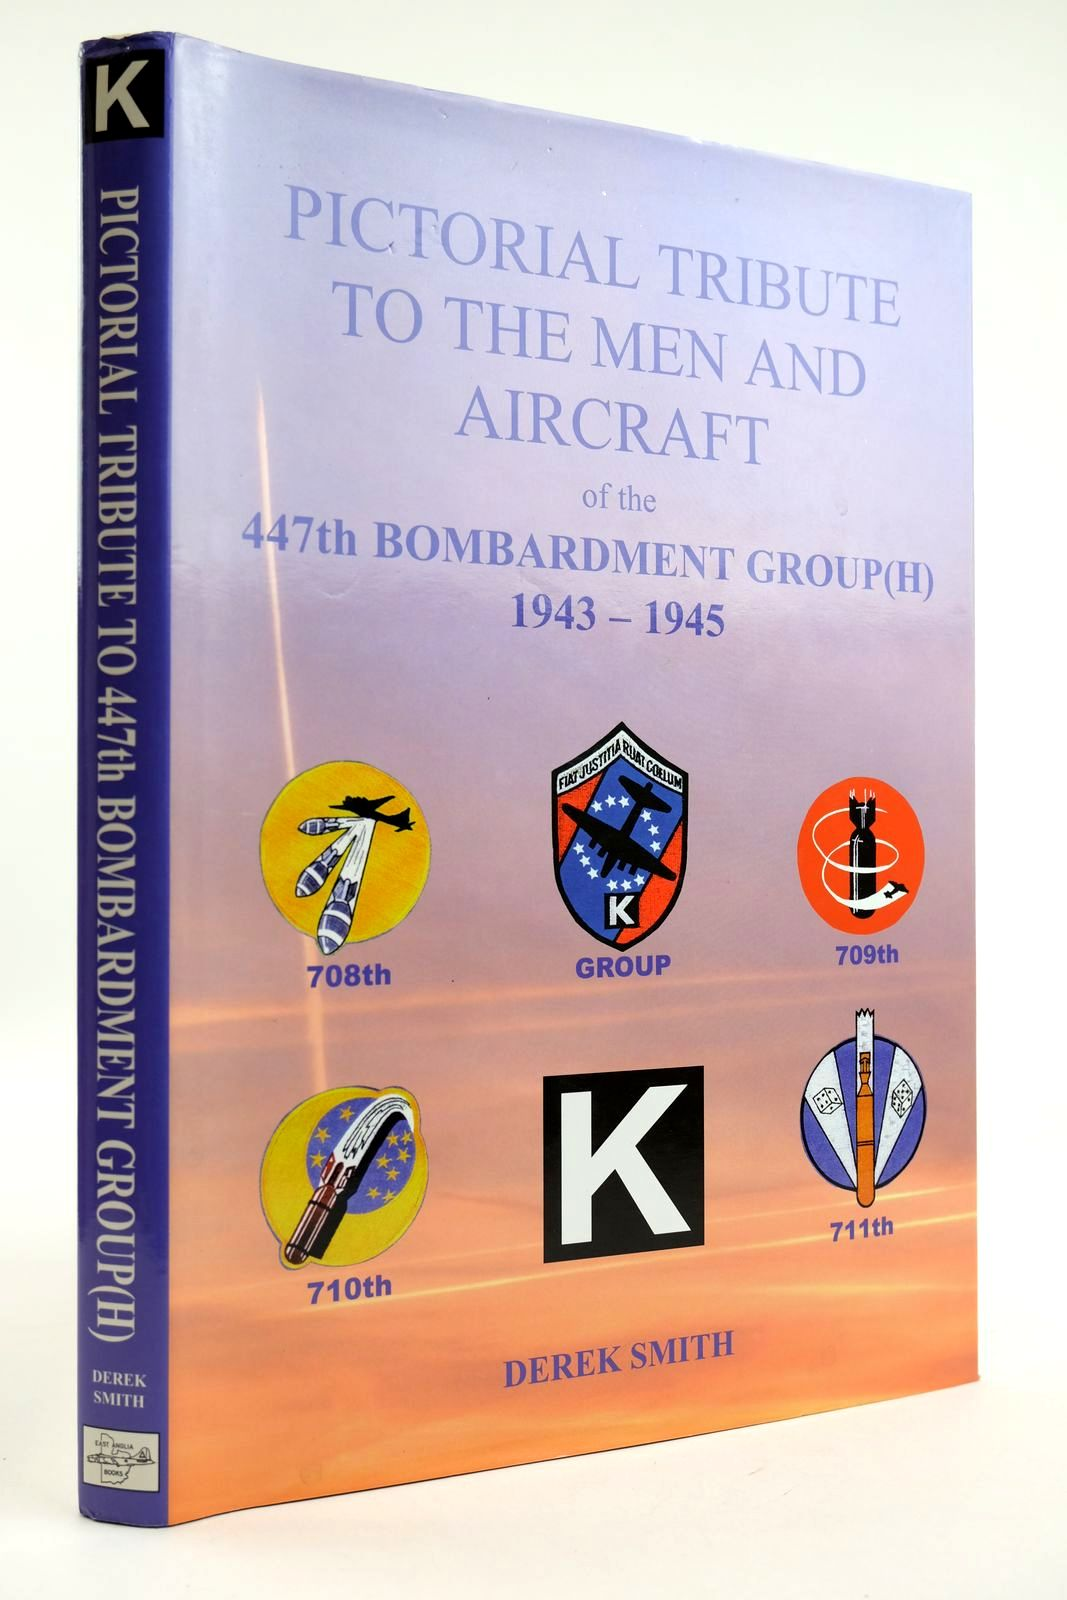 Photo of PICTORIAL TRIBUTE TO THE MEN AND AIRCRAFT OF THE 447TH BOMBARDMENT GROUP(H) 1943-1945 written by Smith, Derek published by East Anglia Books (STOCK CODE: 2132227)  for sale by Stella & Rose's Books